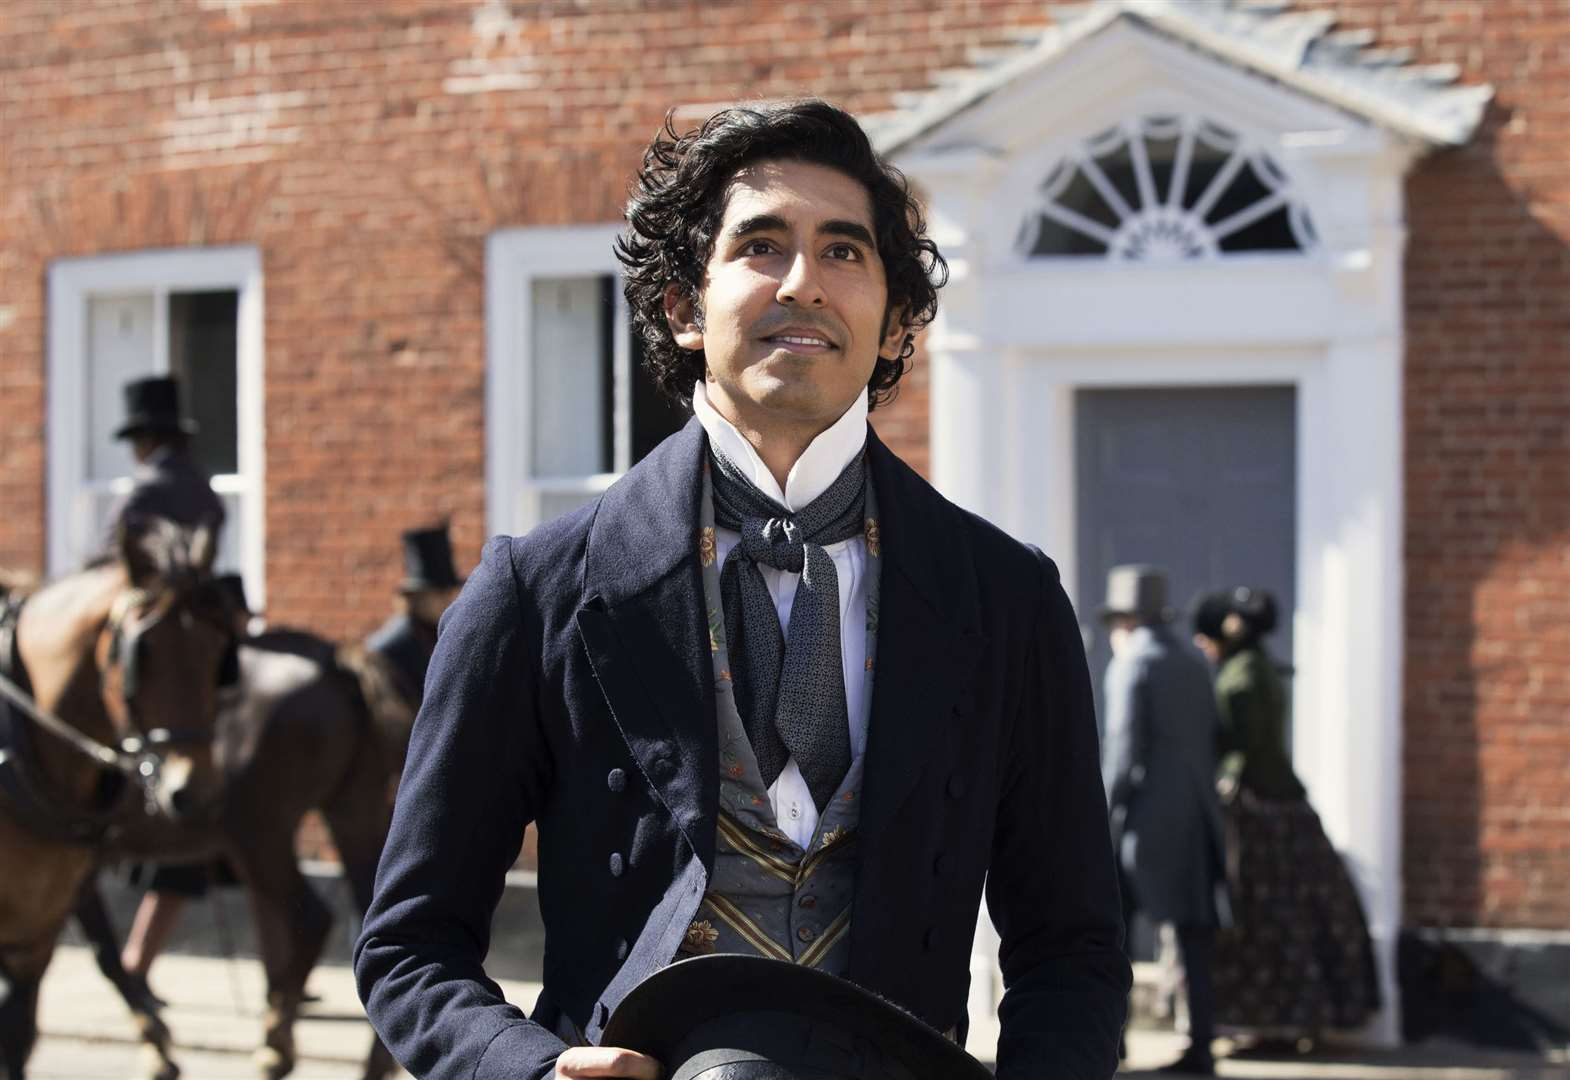 David Copperfield: A Dickens of a fine tale, says superstar Dev